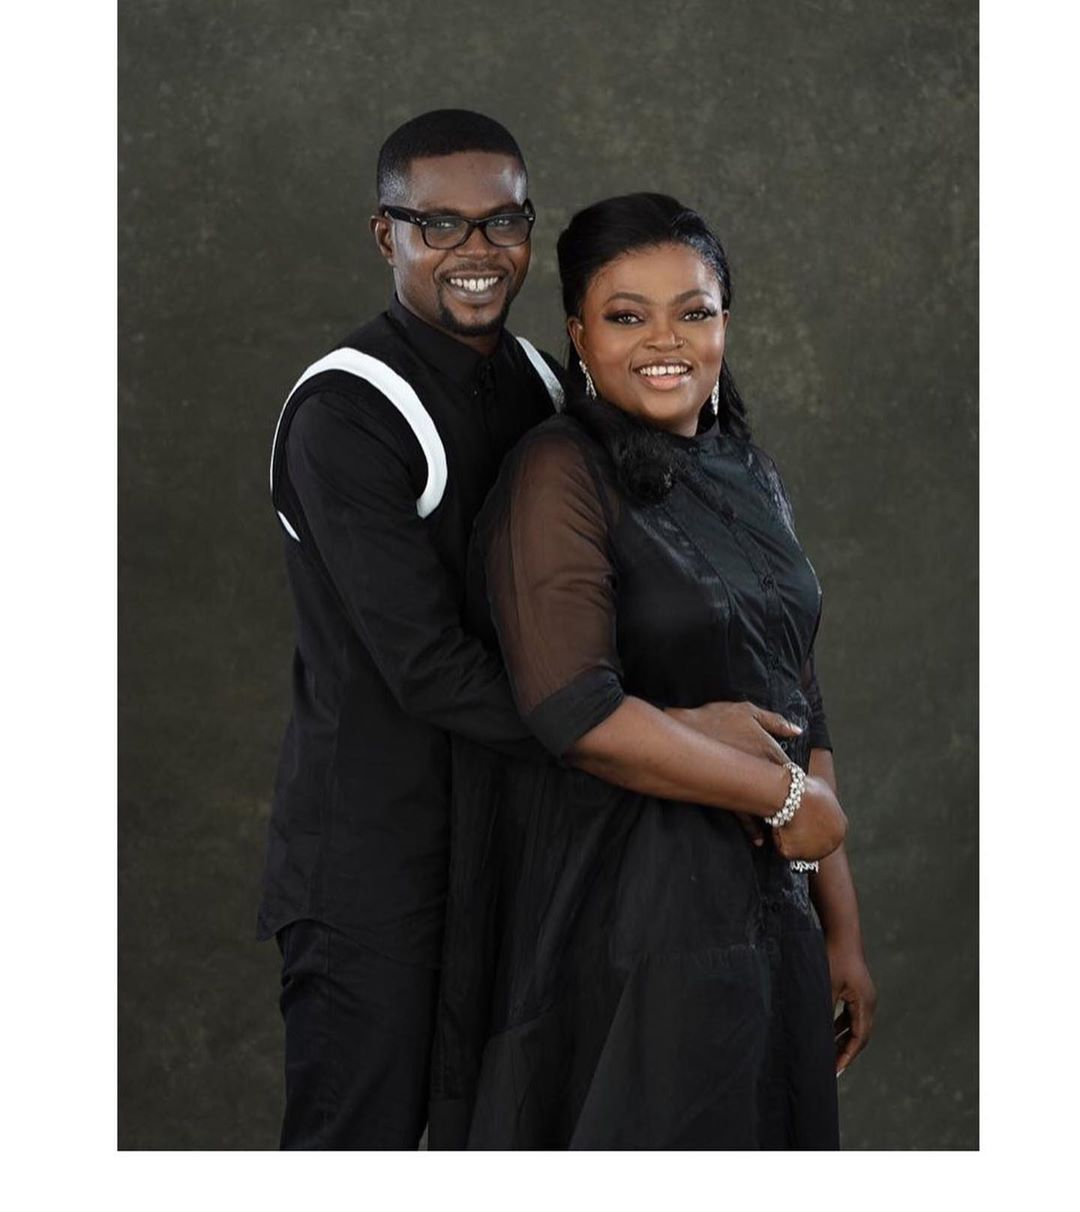 Police arrest Funke Akindele, ask Naira Marley, others to report